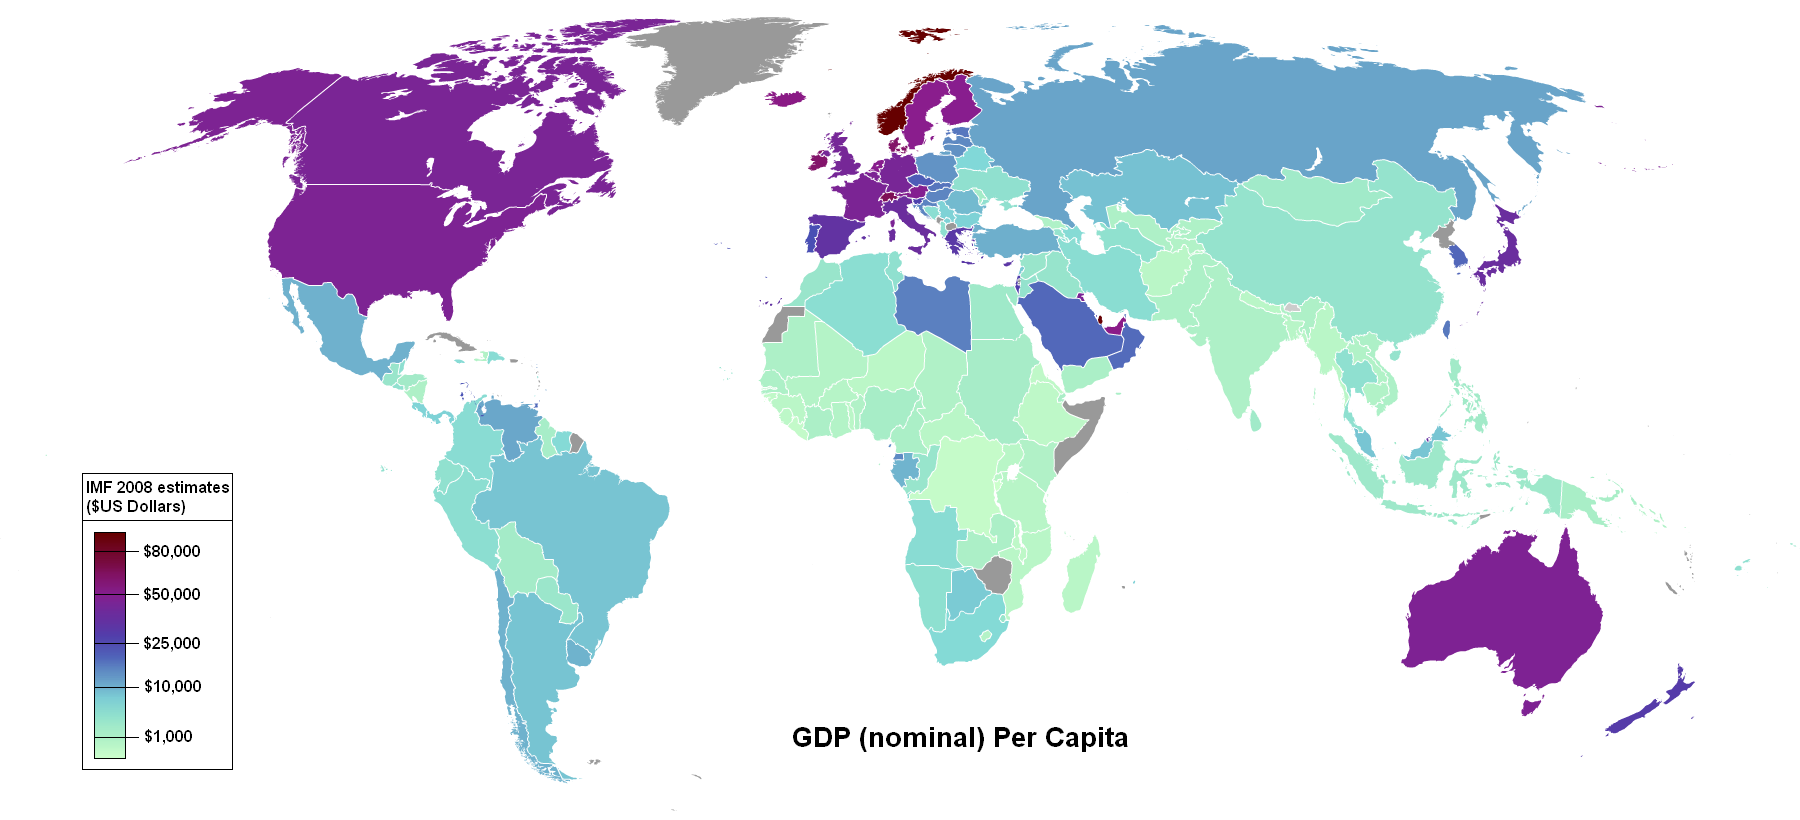 GDP map from Wikipedia